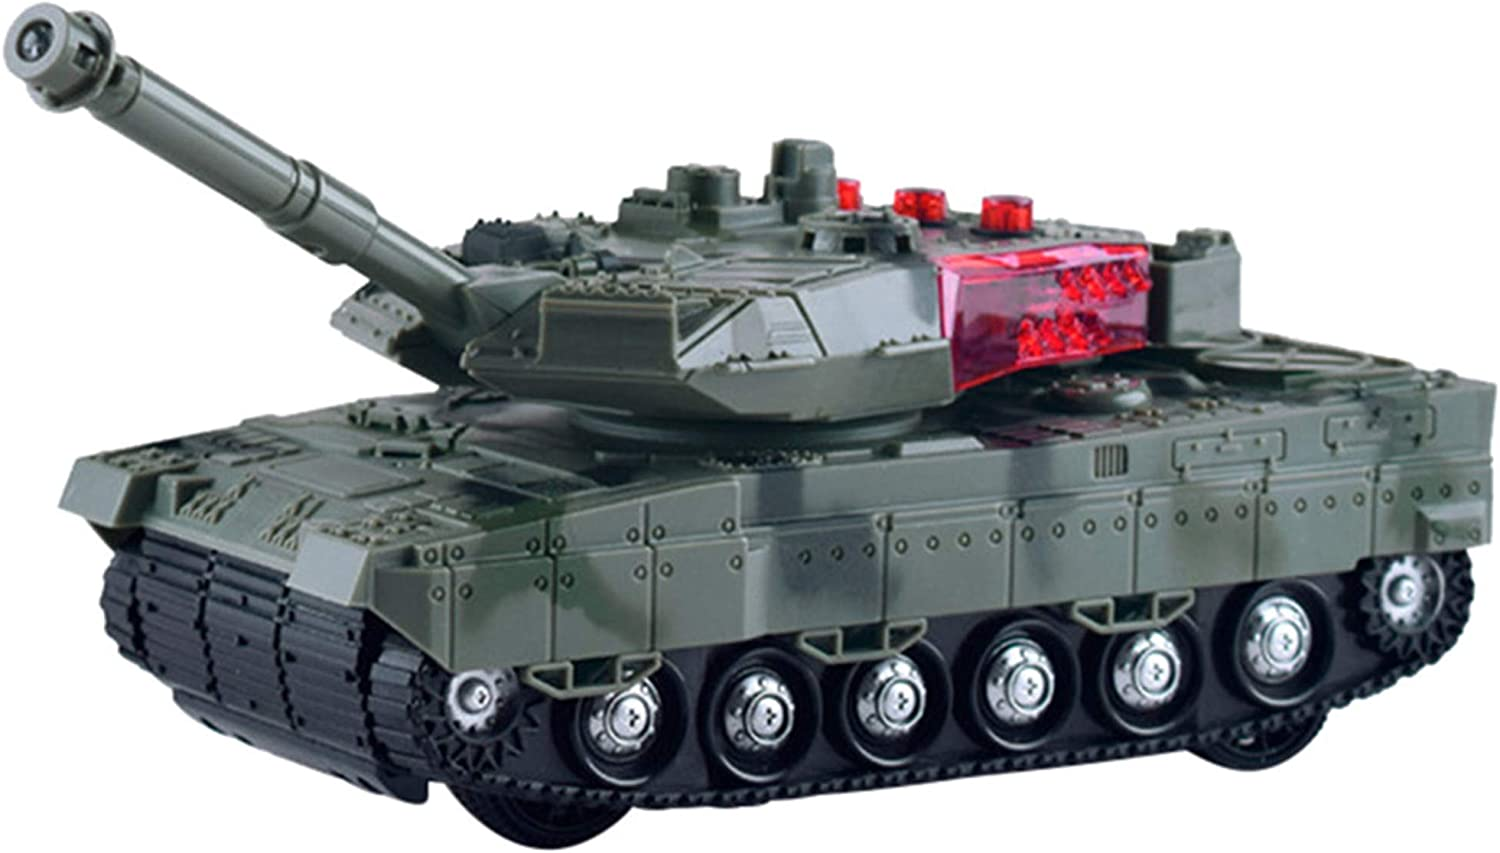 nueva gama alta exclusiva Happy Event tanque Depósito mando a distancia mini mini mini tanque RC rojoating Turret realistas Sounds & Light  60% de descuento